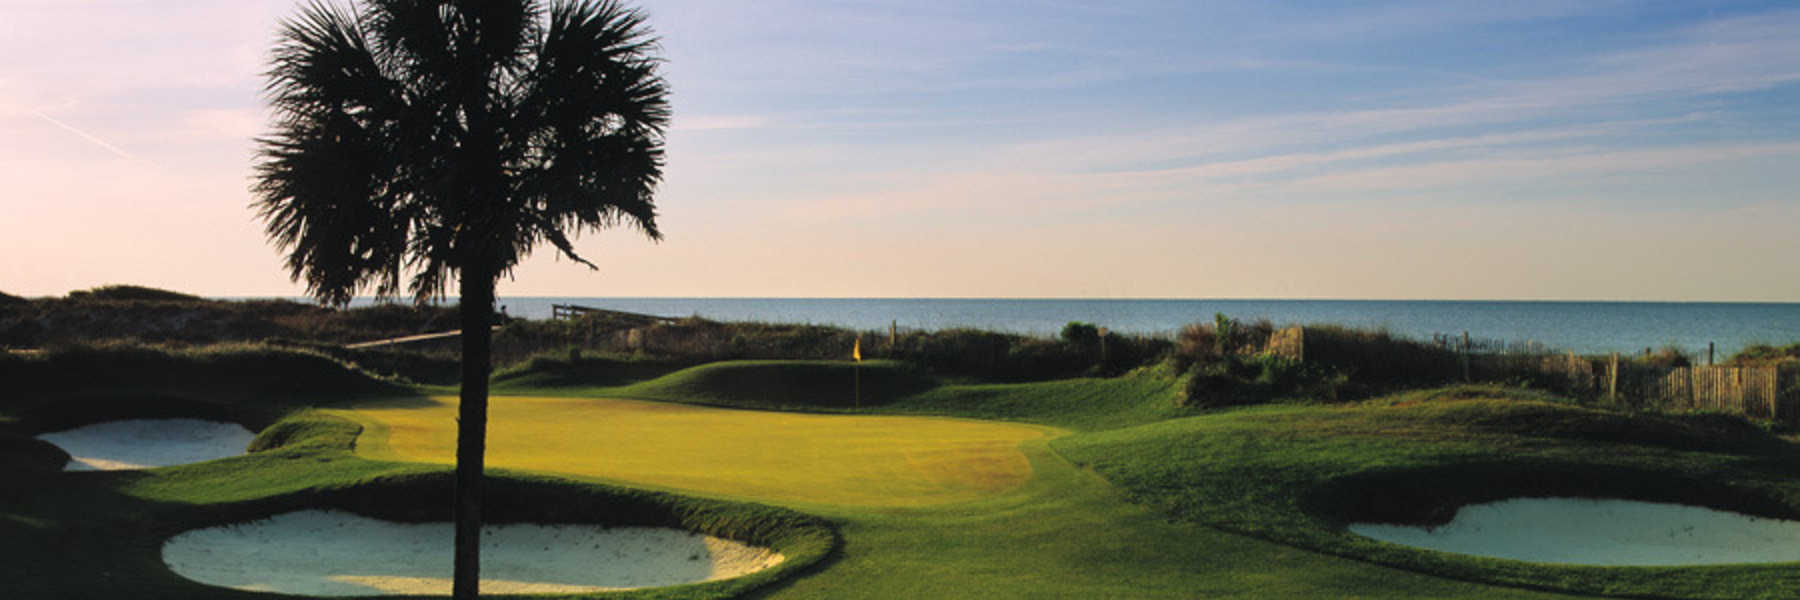 Golf Vacation Package - Kiawah Island Resort Stay and Play - starting at $209 per person, per day!